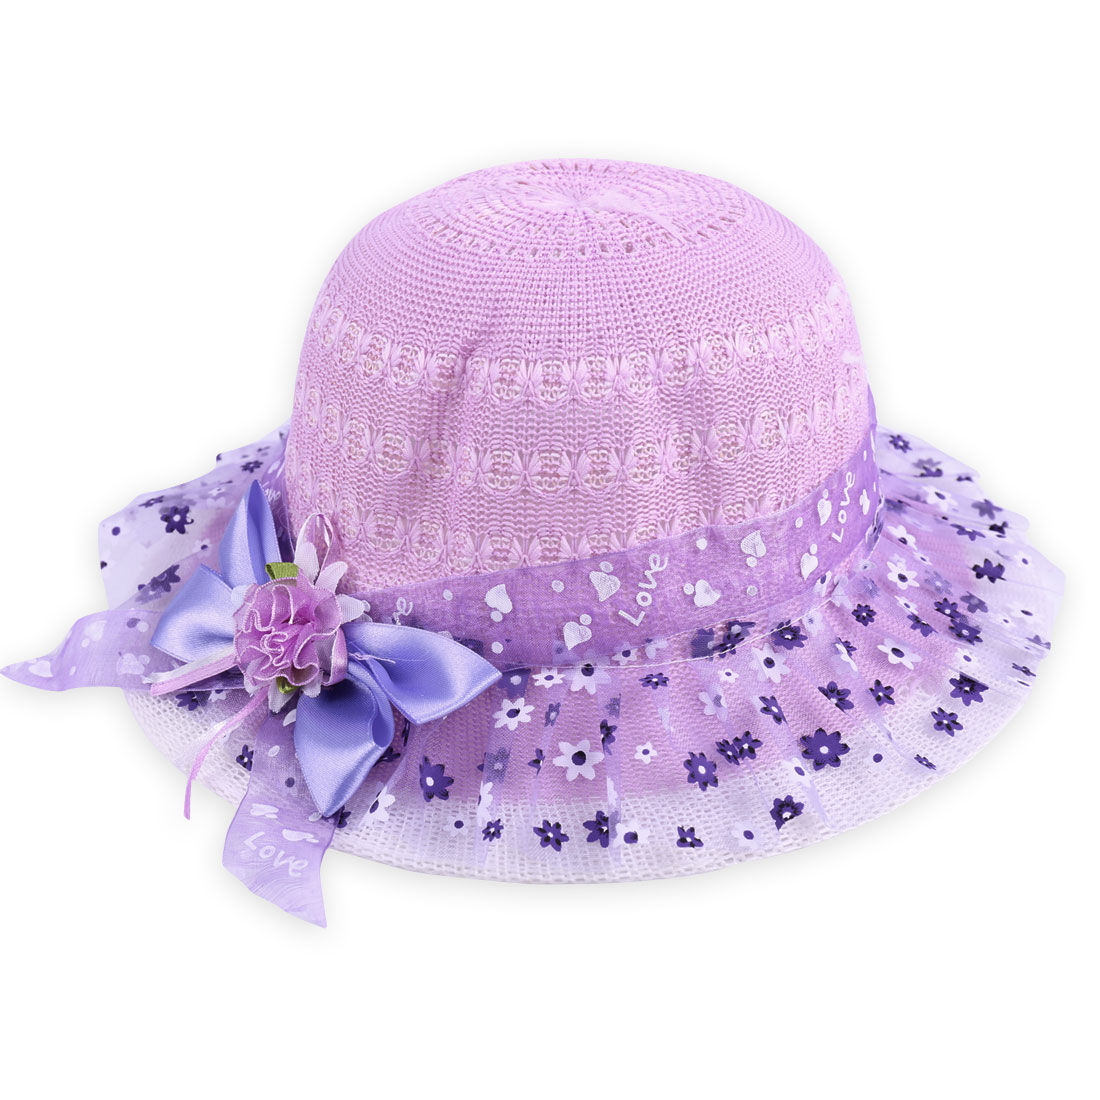 Lovely Girls Light Purple Floral Prints Mesh Covered Flower Decor Hat